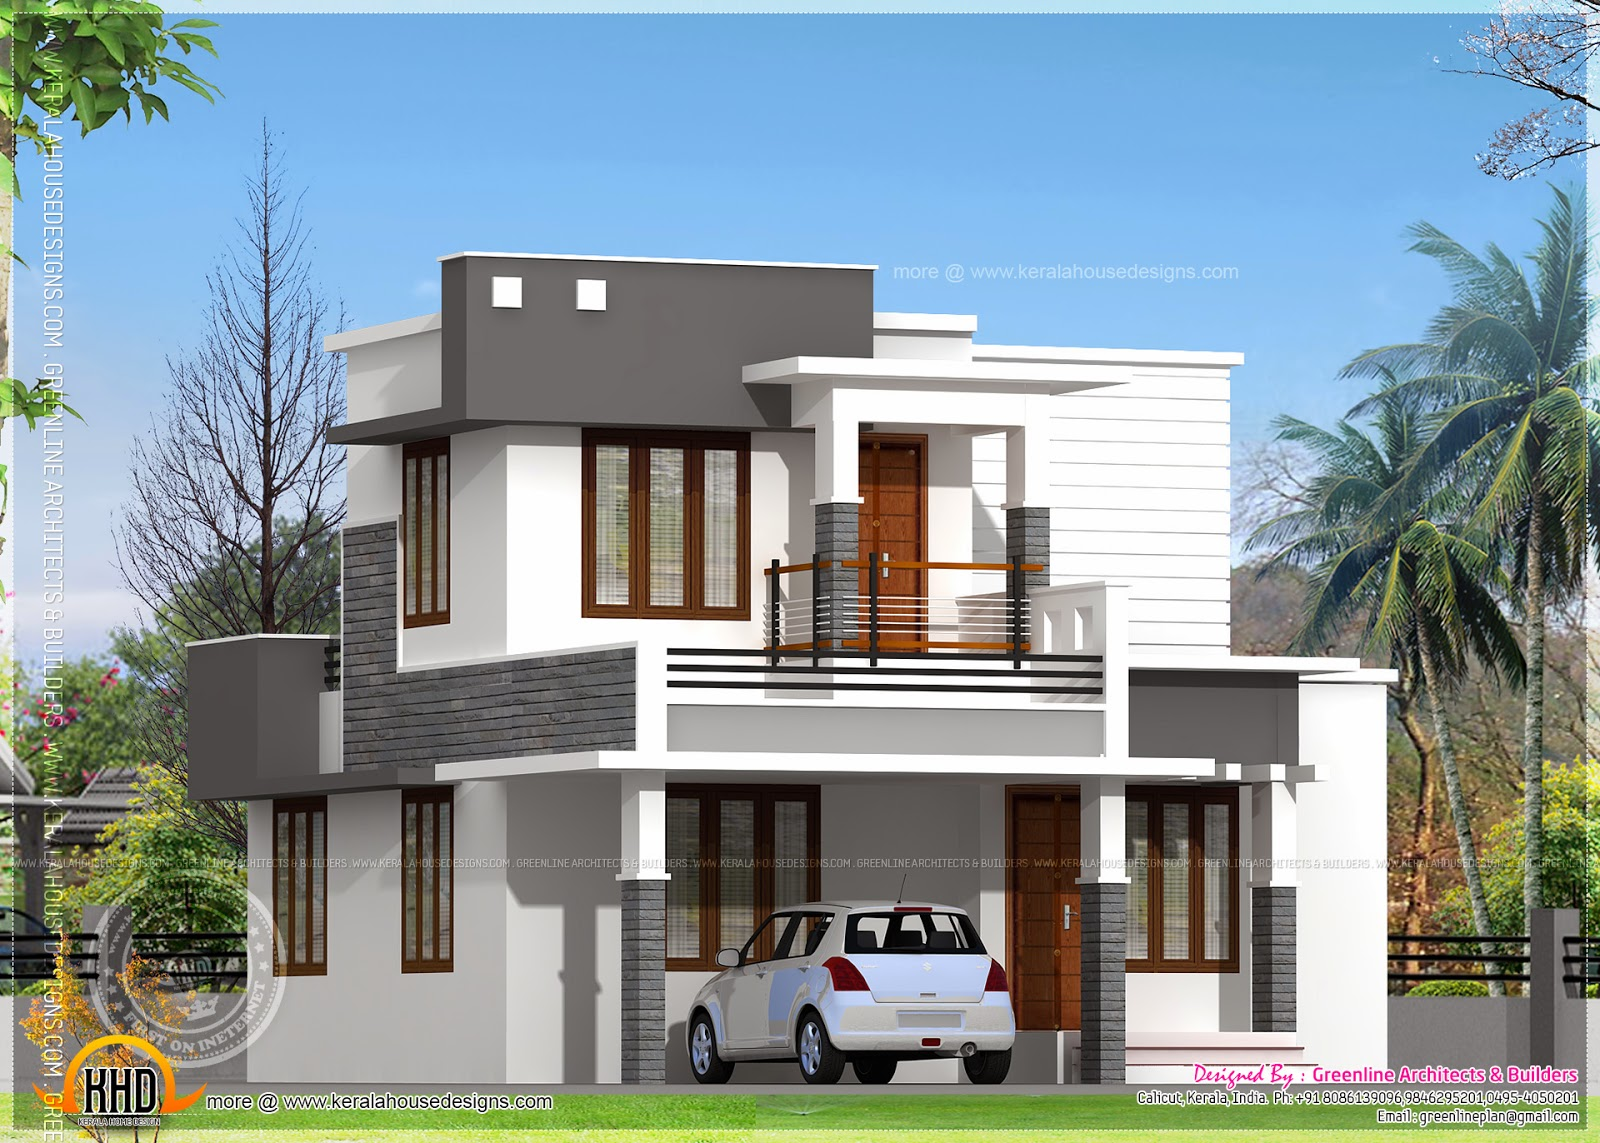 Small Flat Roof Double Stories House Kerala Home Design